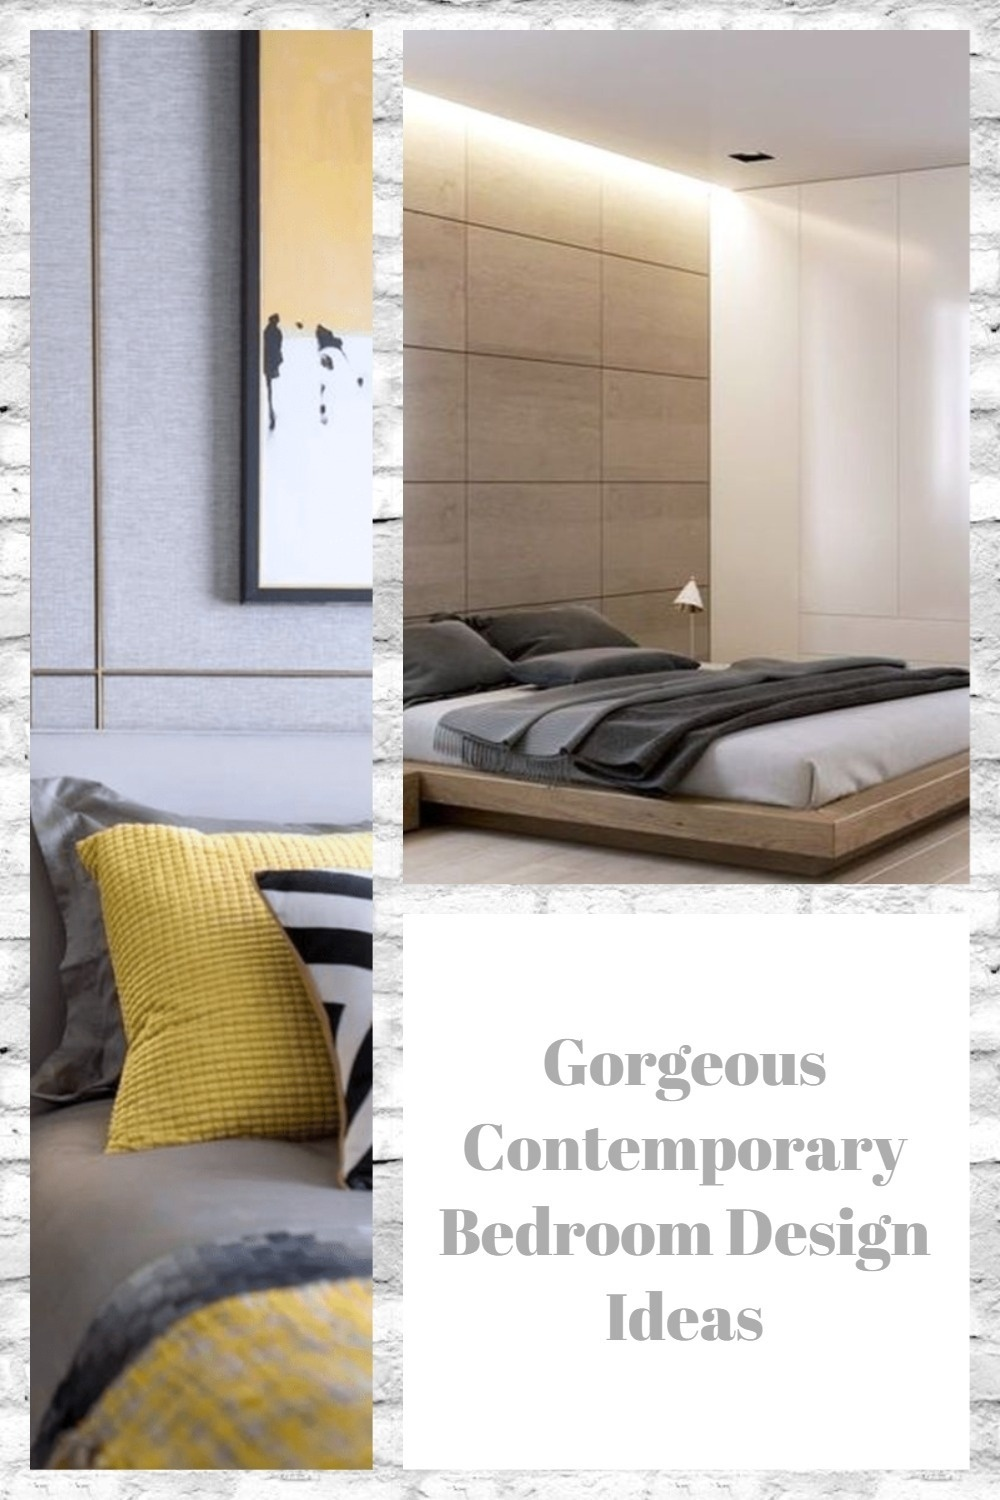 Gorgeous Contemporary Bedroom Design Ideas